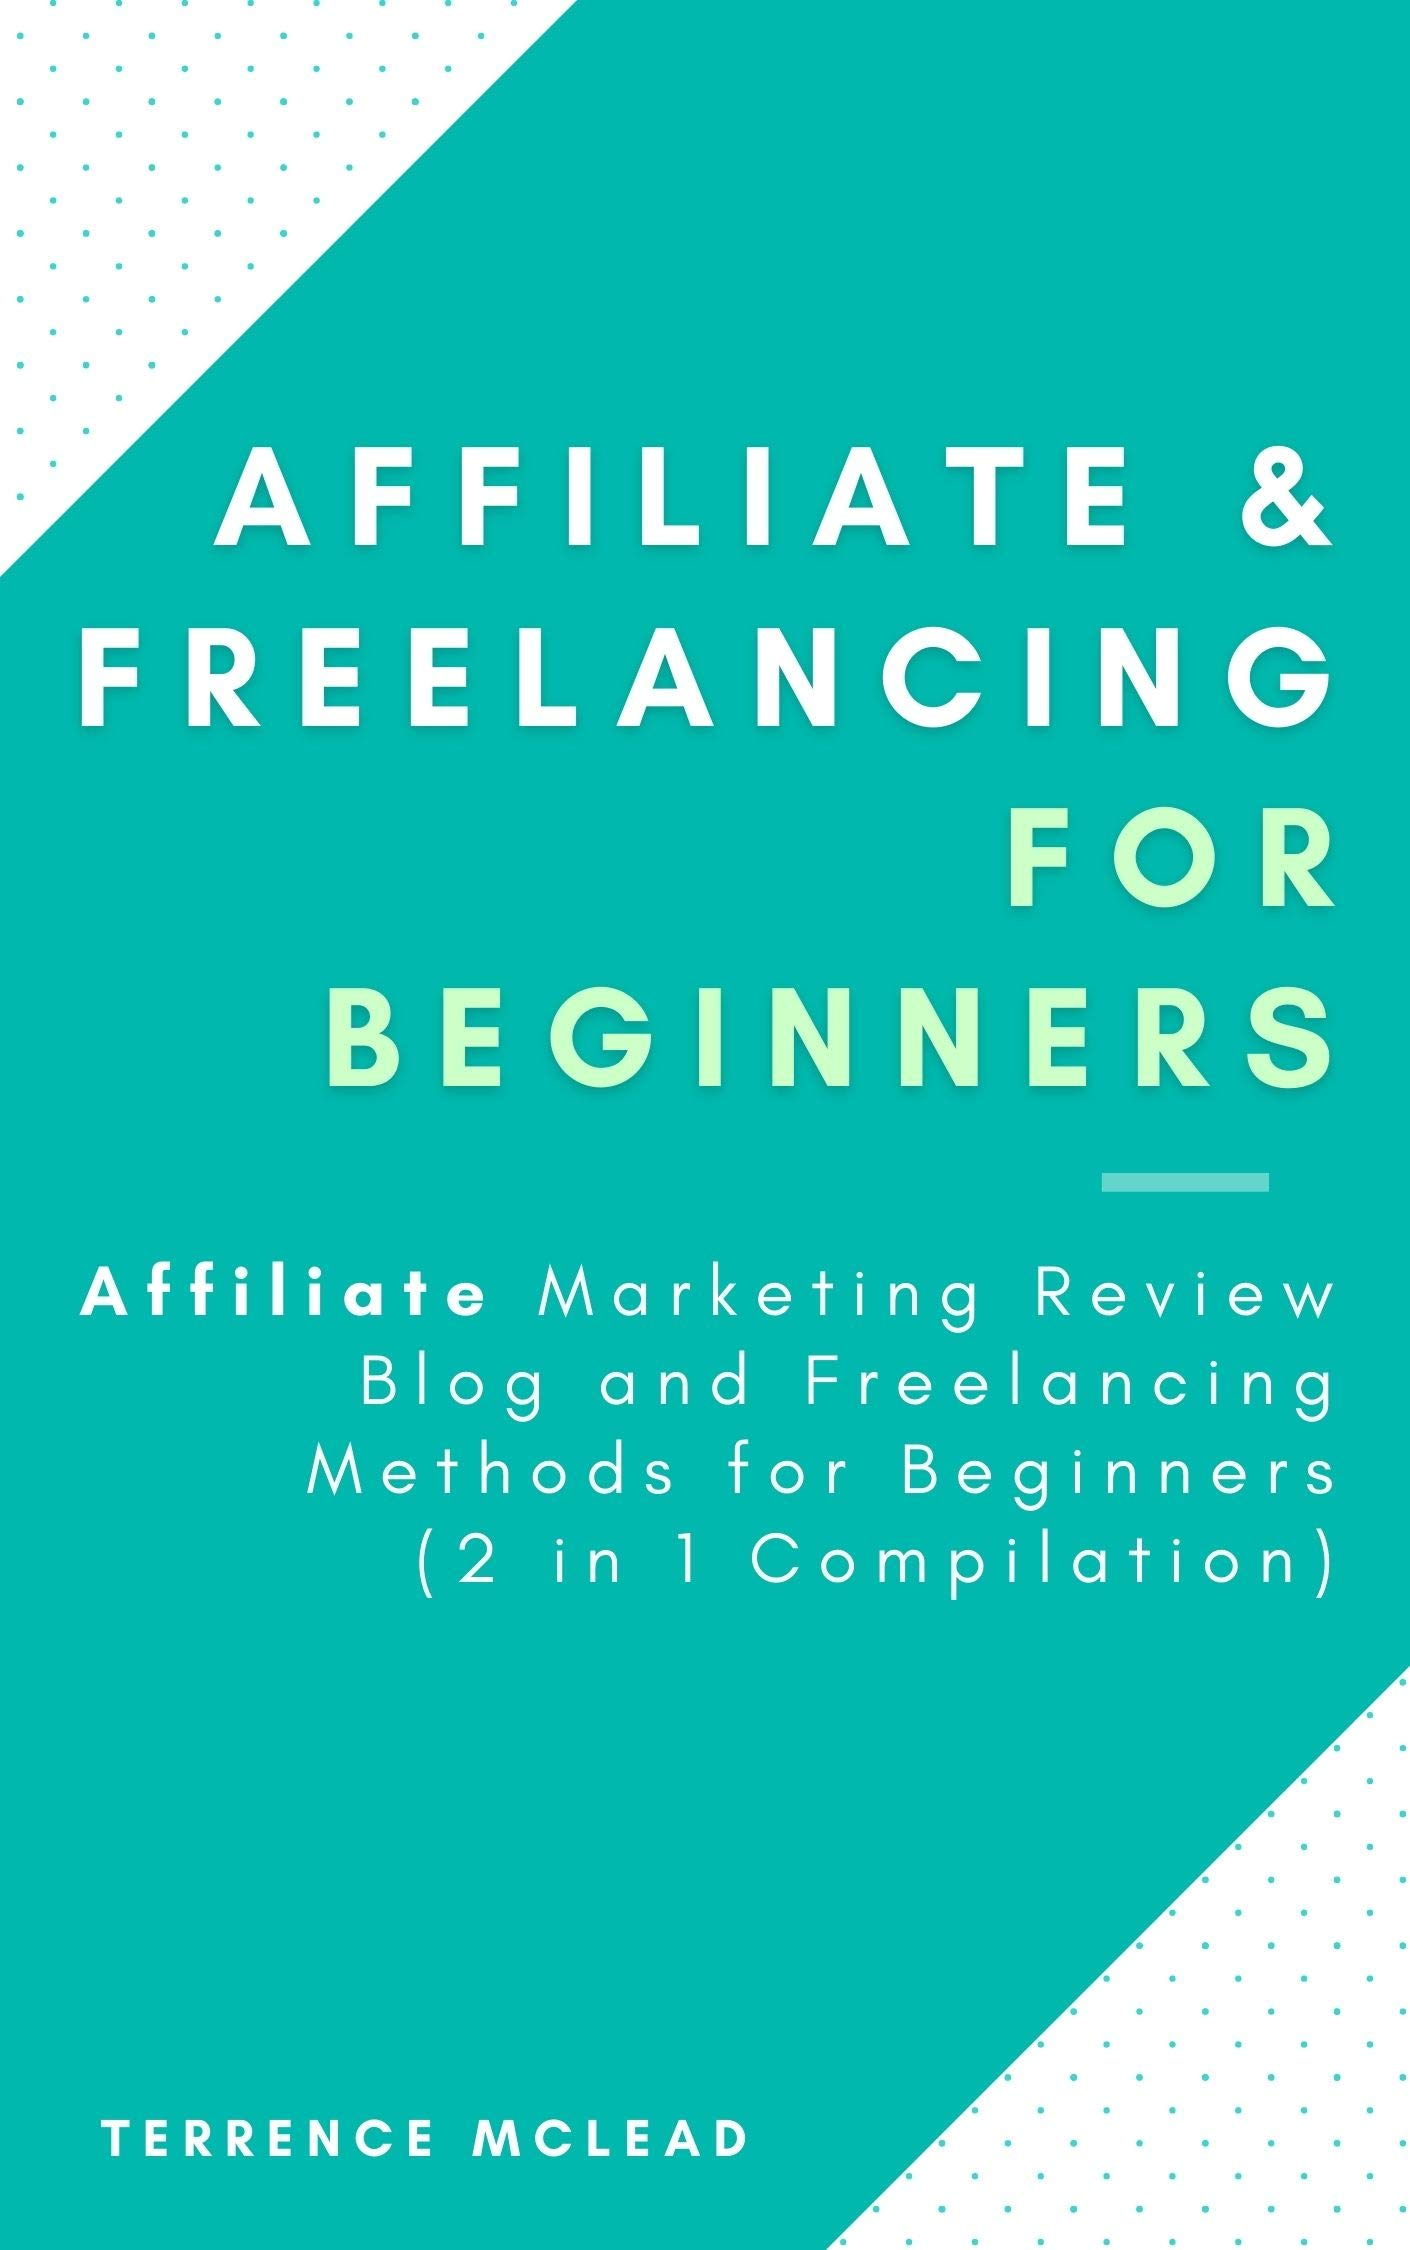 Affiliate & Freelancing for Beginners : Affiliate Marketing Review Blog and Freelancing Methods for Beginners (2 in 1 Compilation)